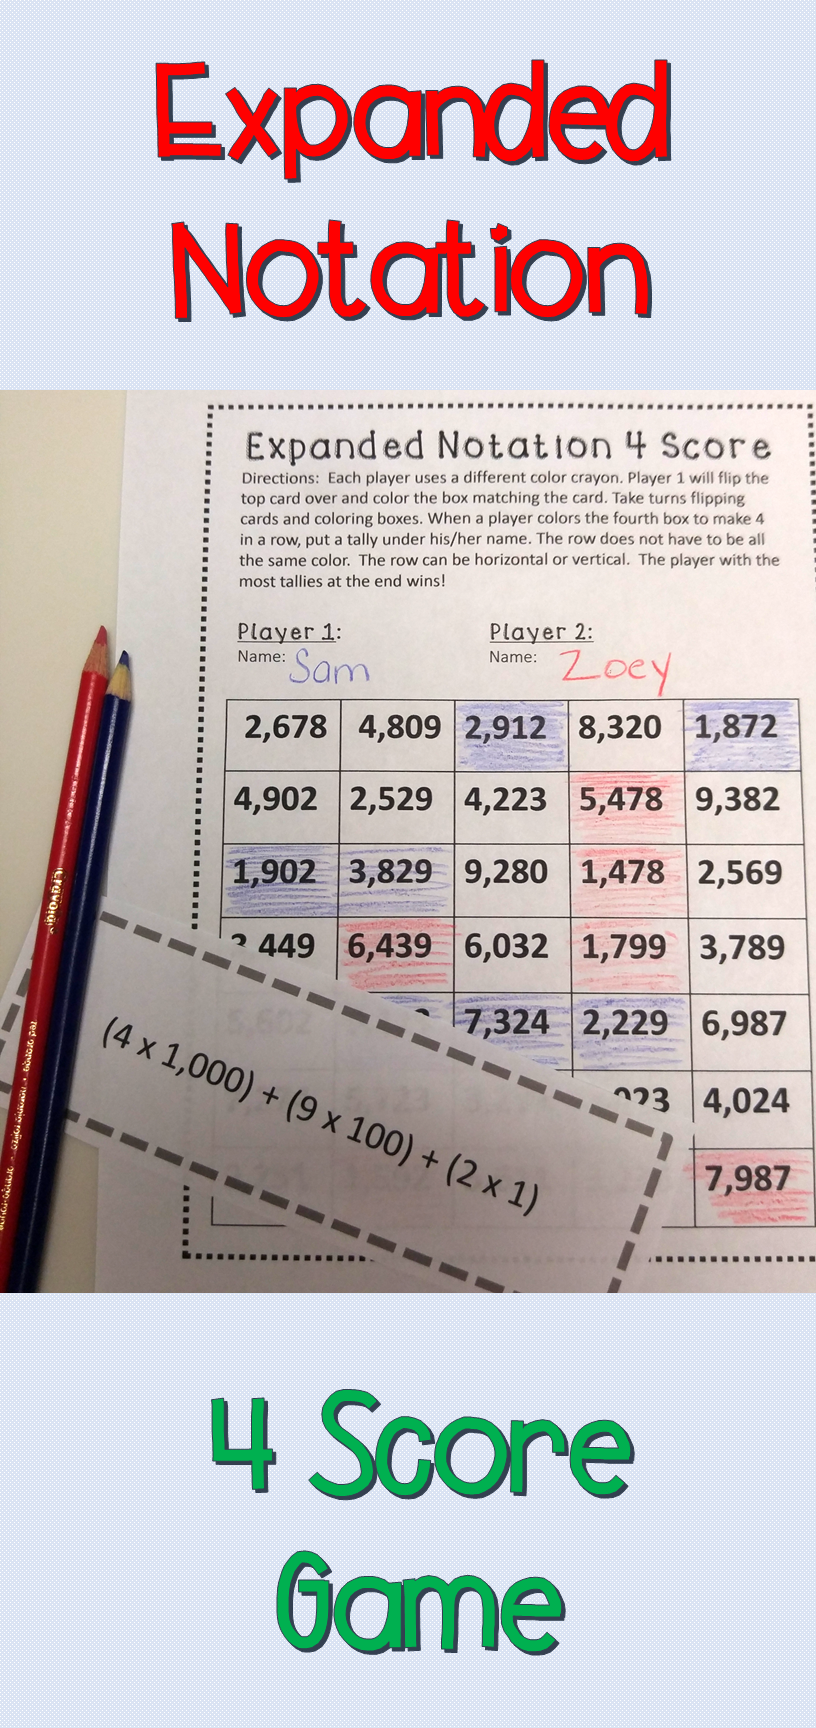 Expanded Notation 4 Score Game with Record Sheet